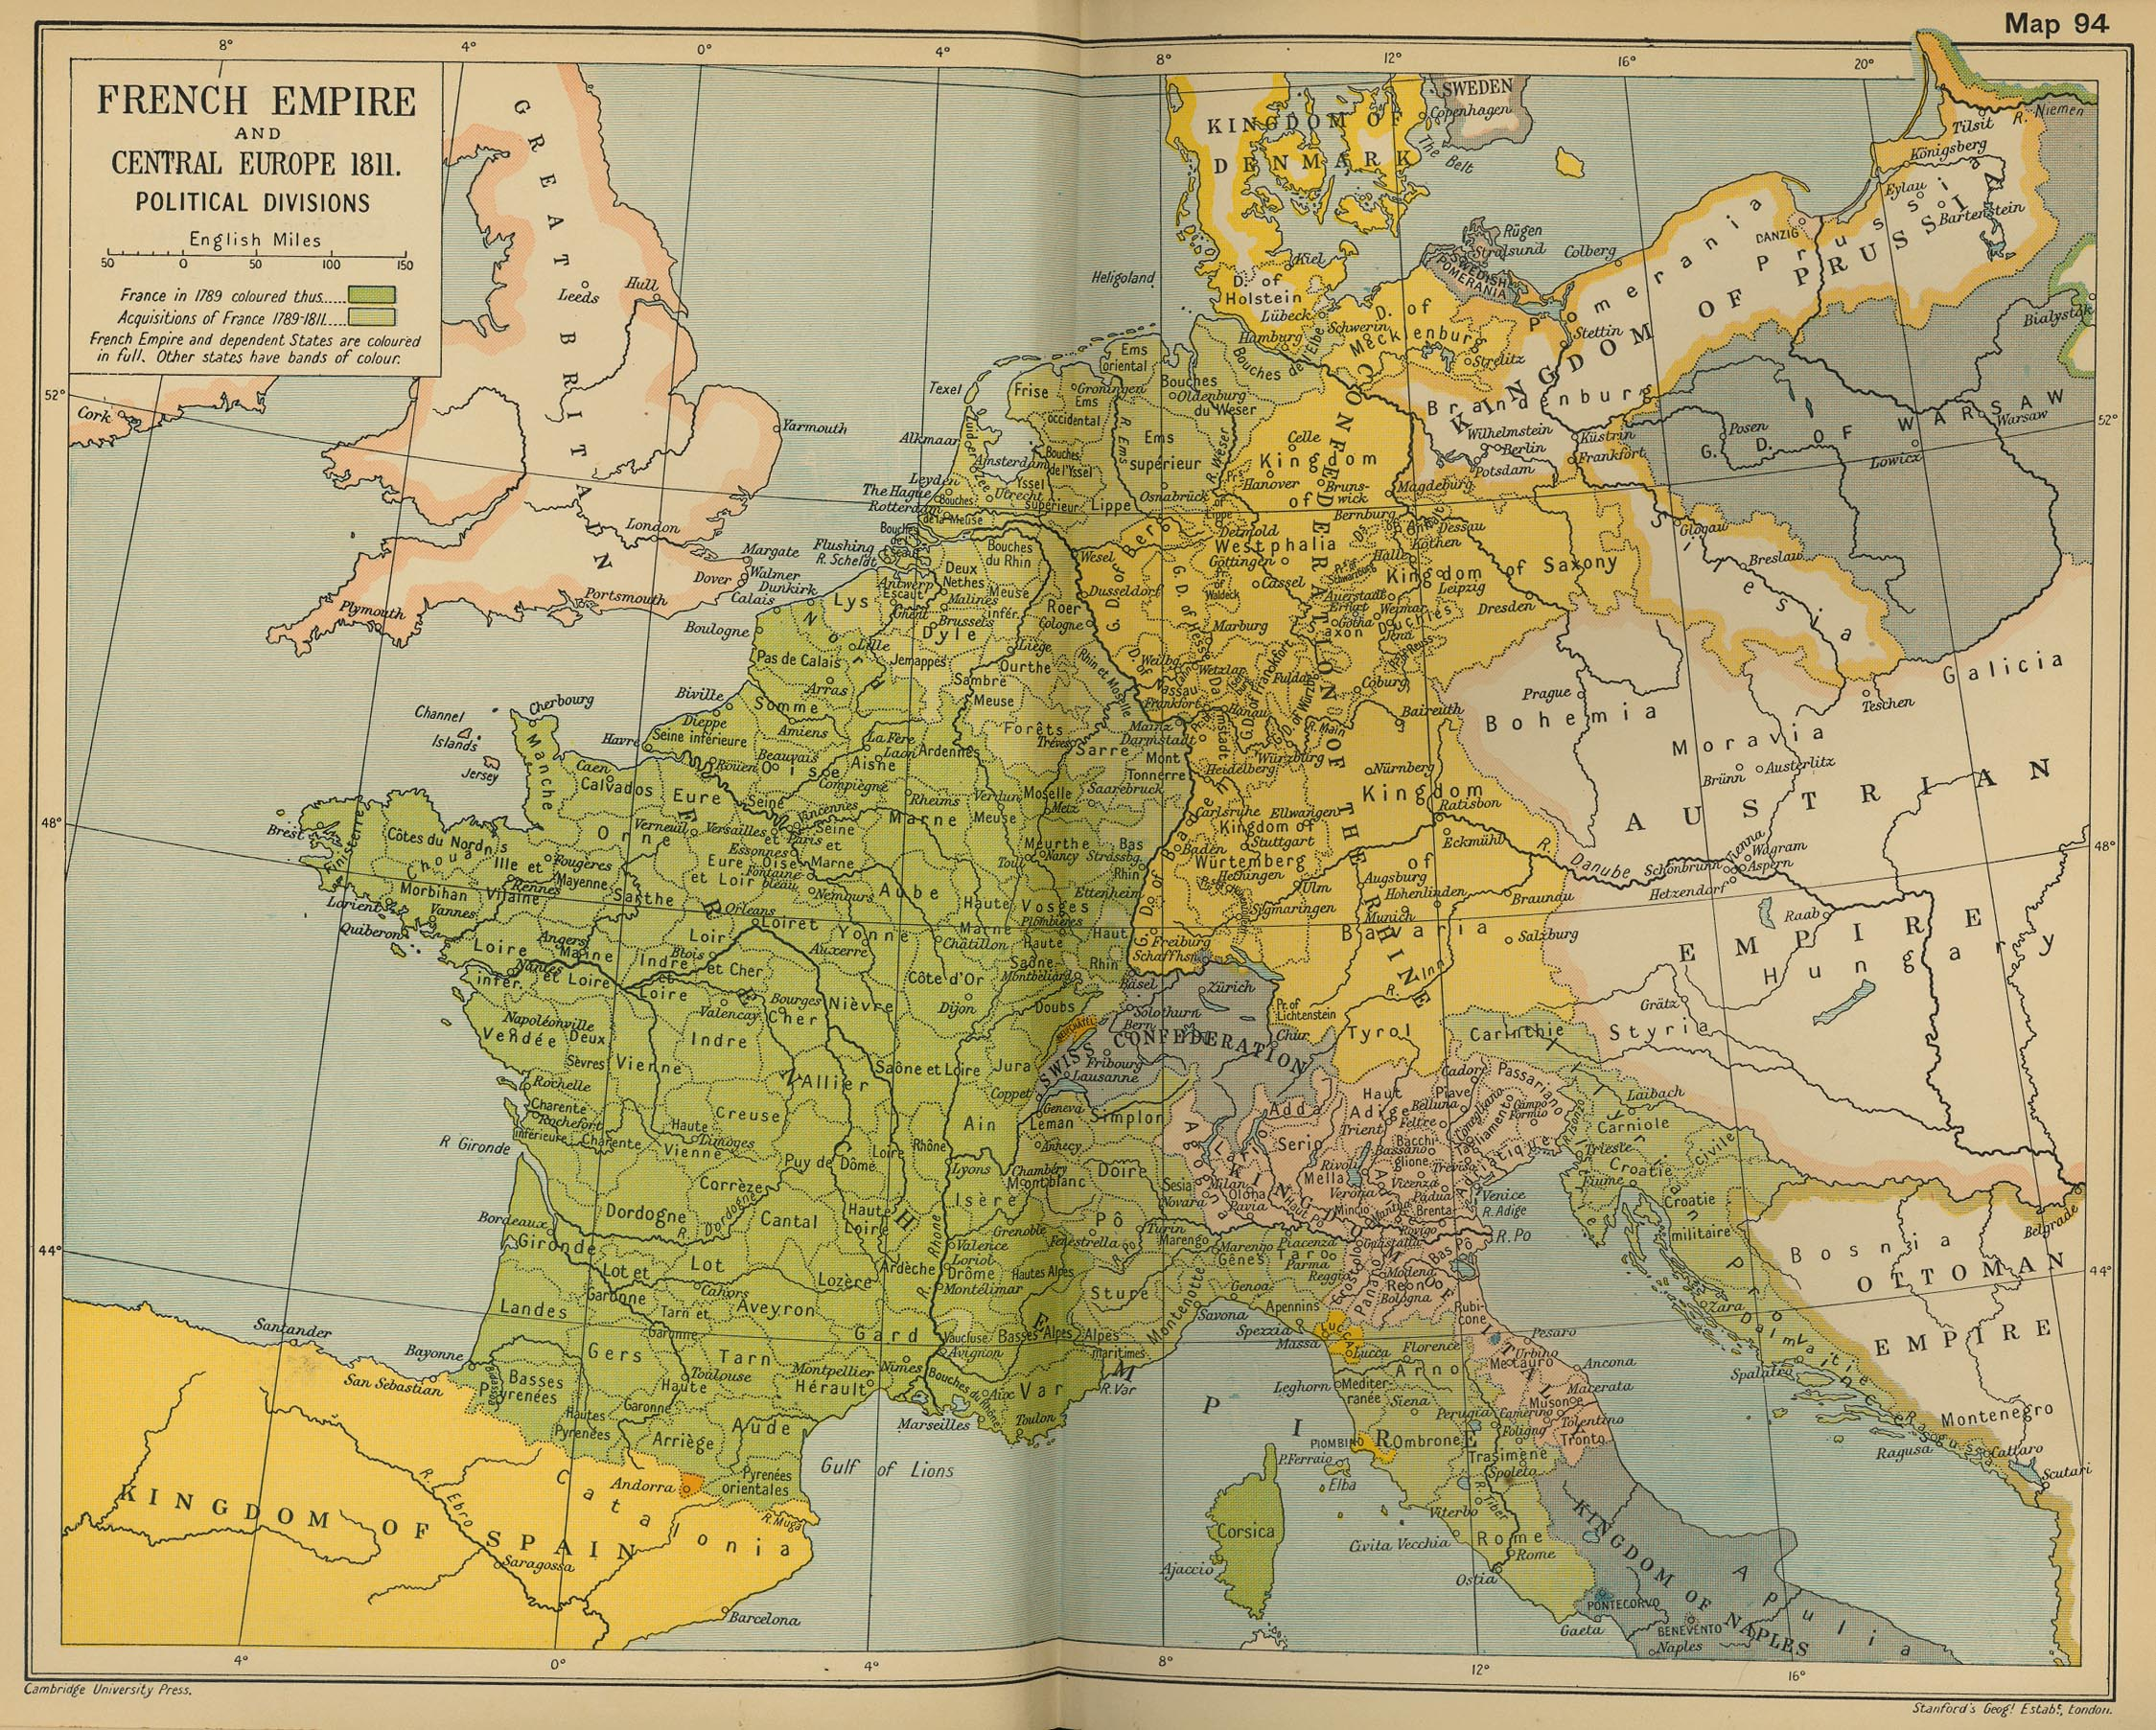 Map of Central Europe and the French Empire in 1811